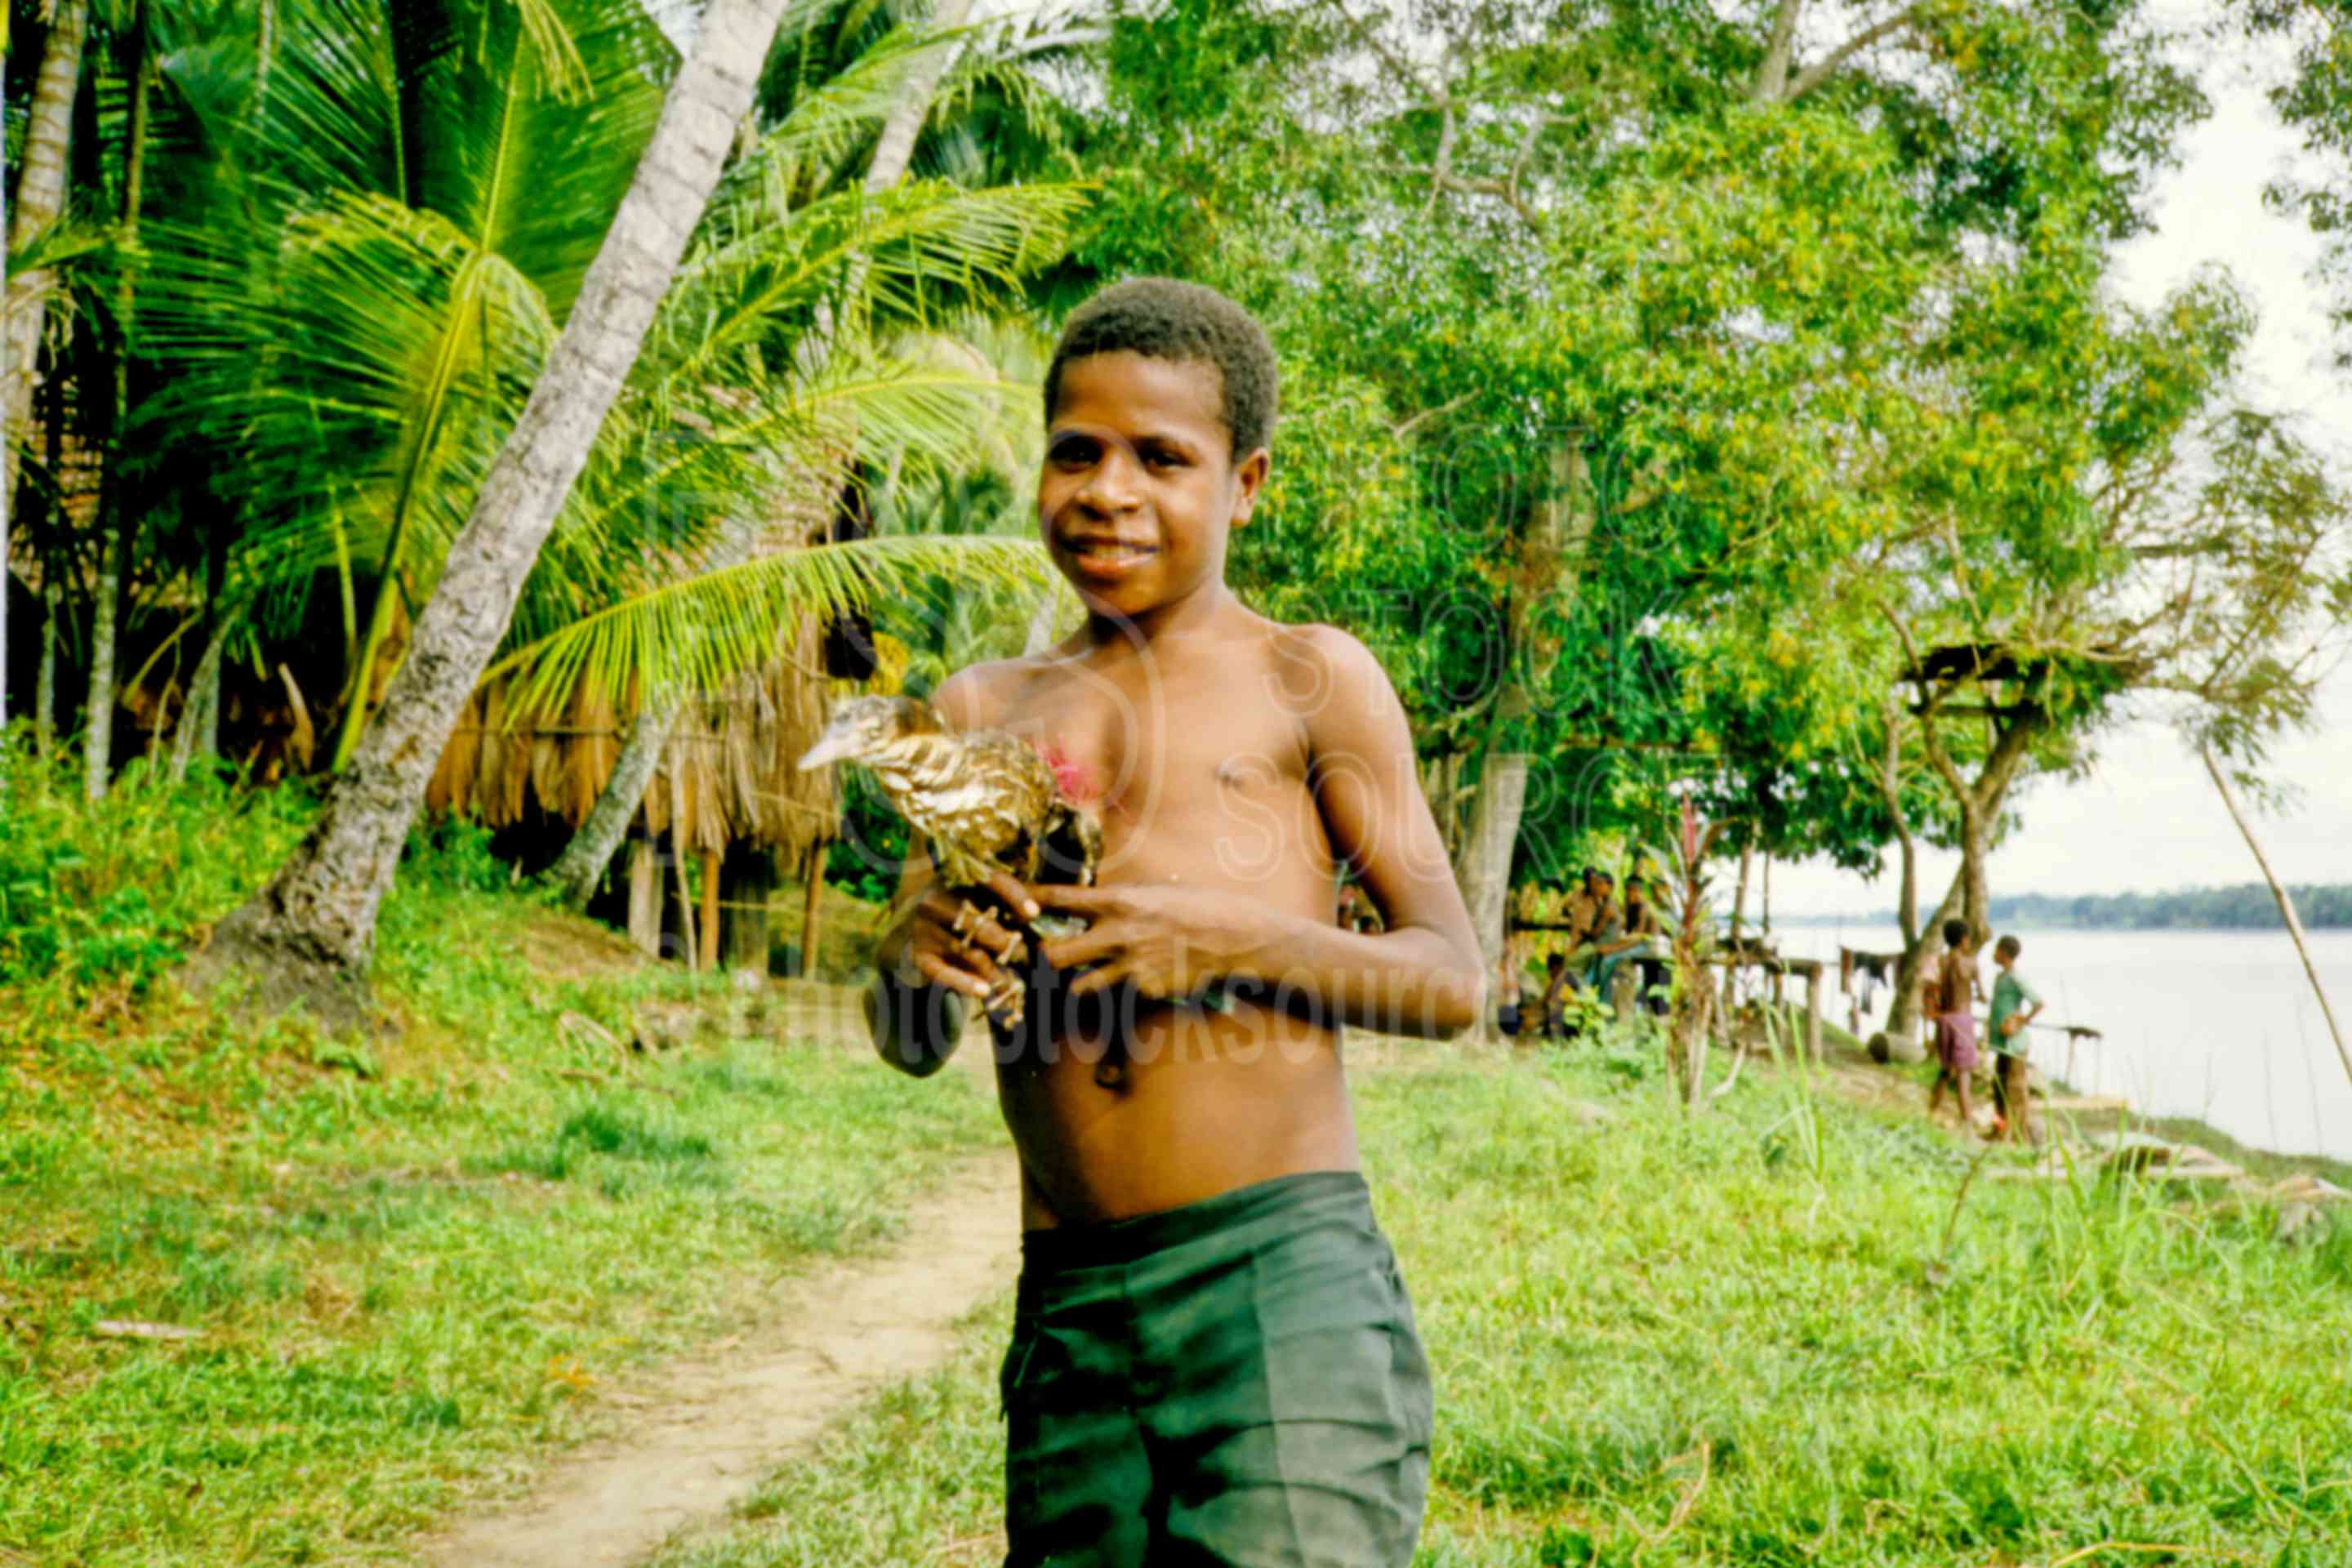 Boy with his Chicken,animal,boys,chicken,jungle,trail,children